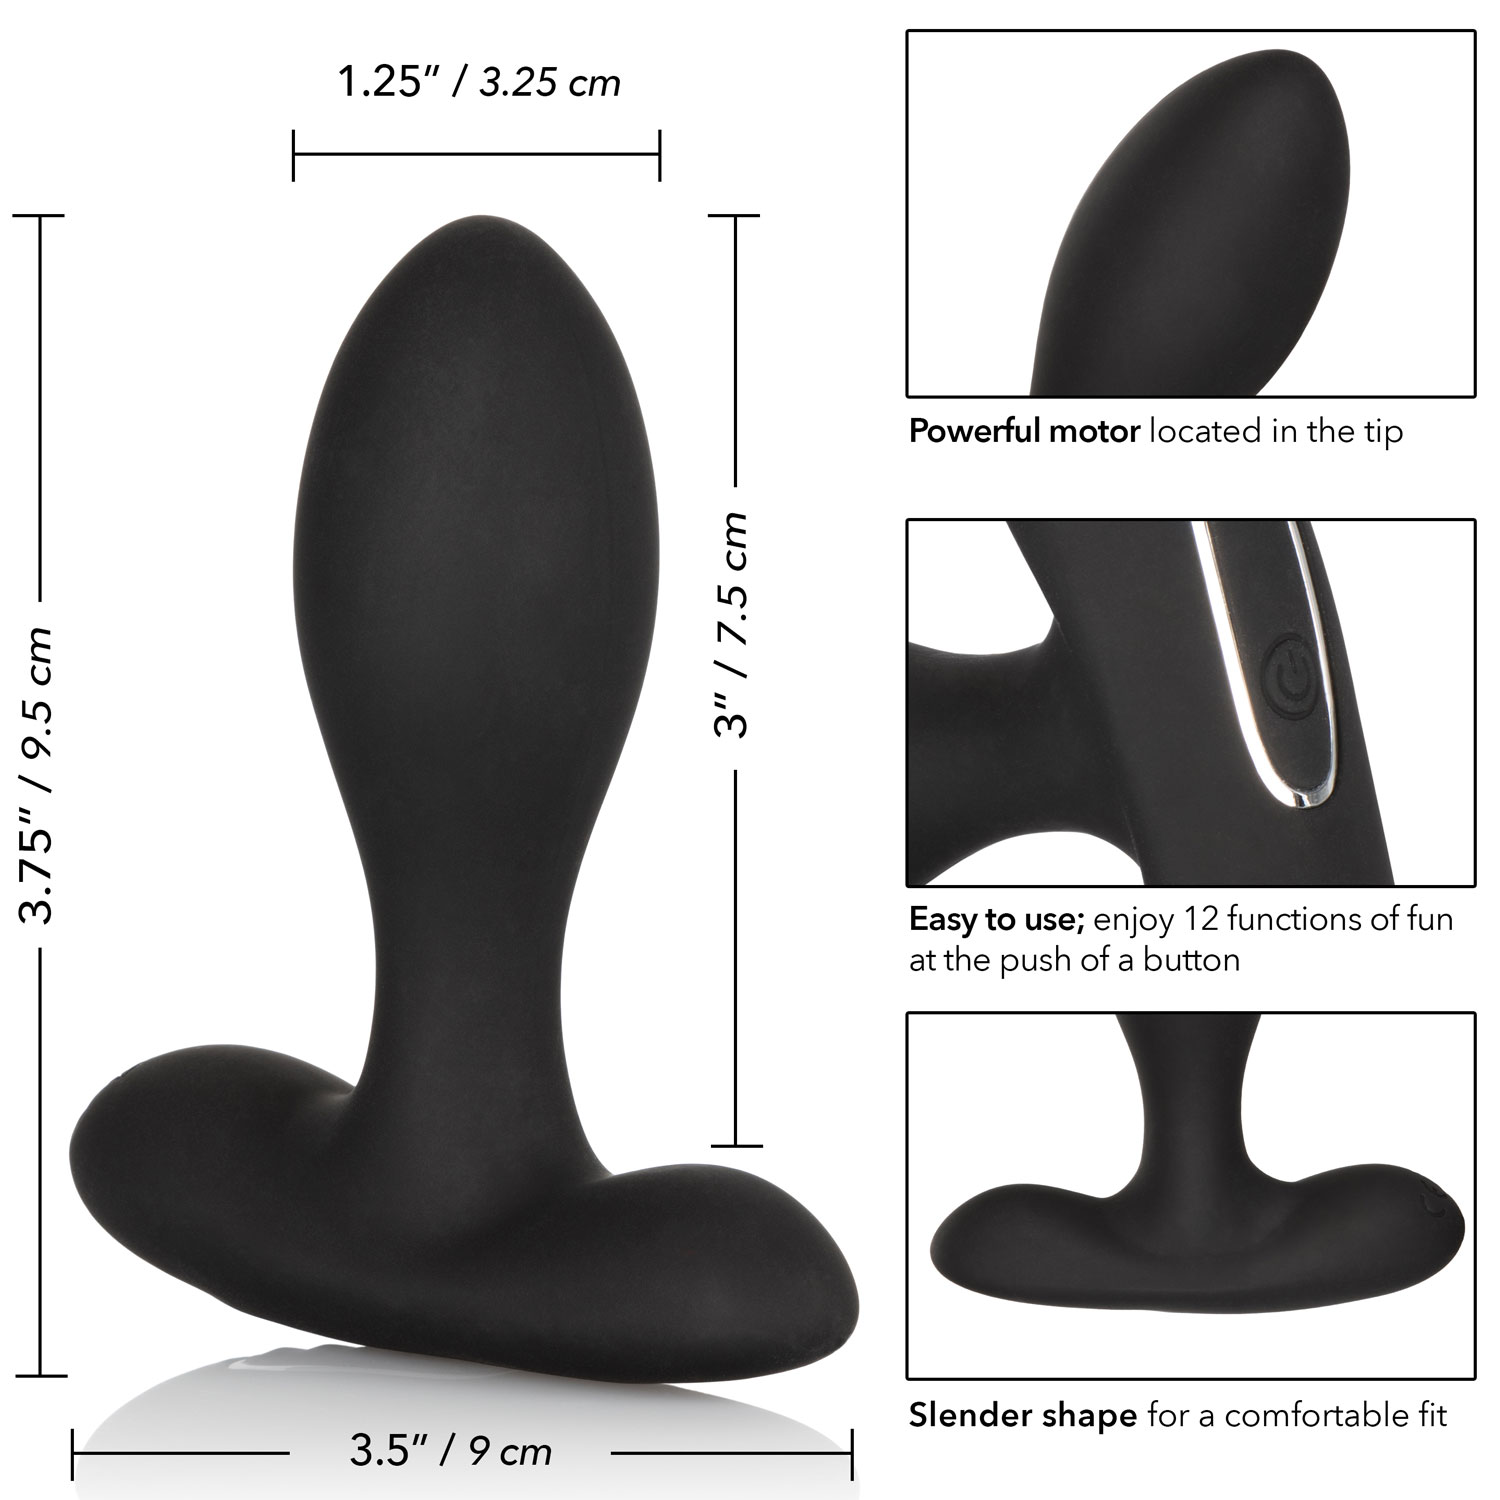 Eclipse Slender Probe Silicone Vibrating Anal Probe - Measurements